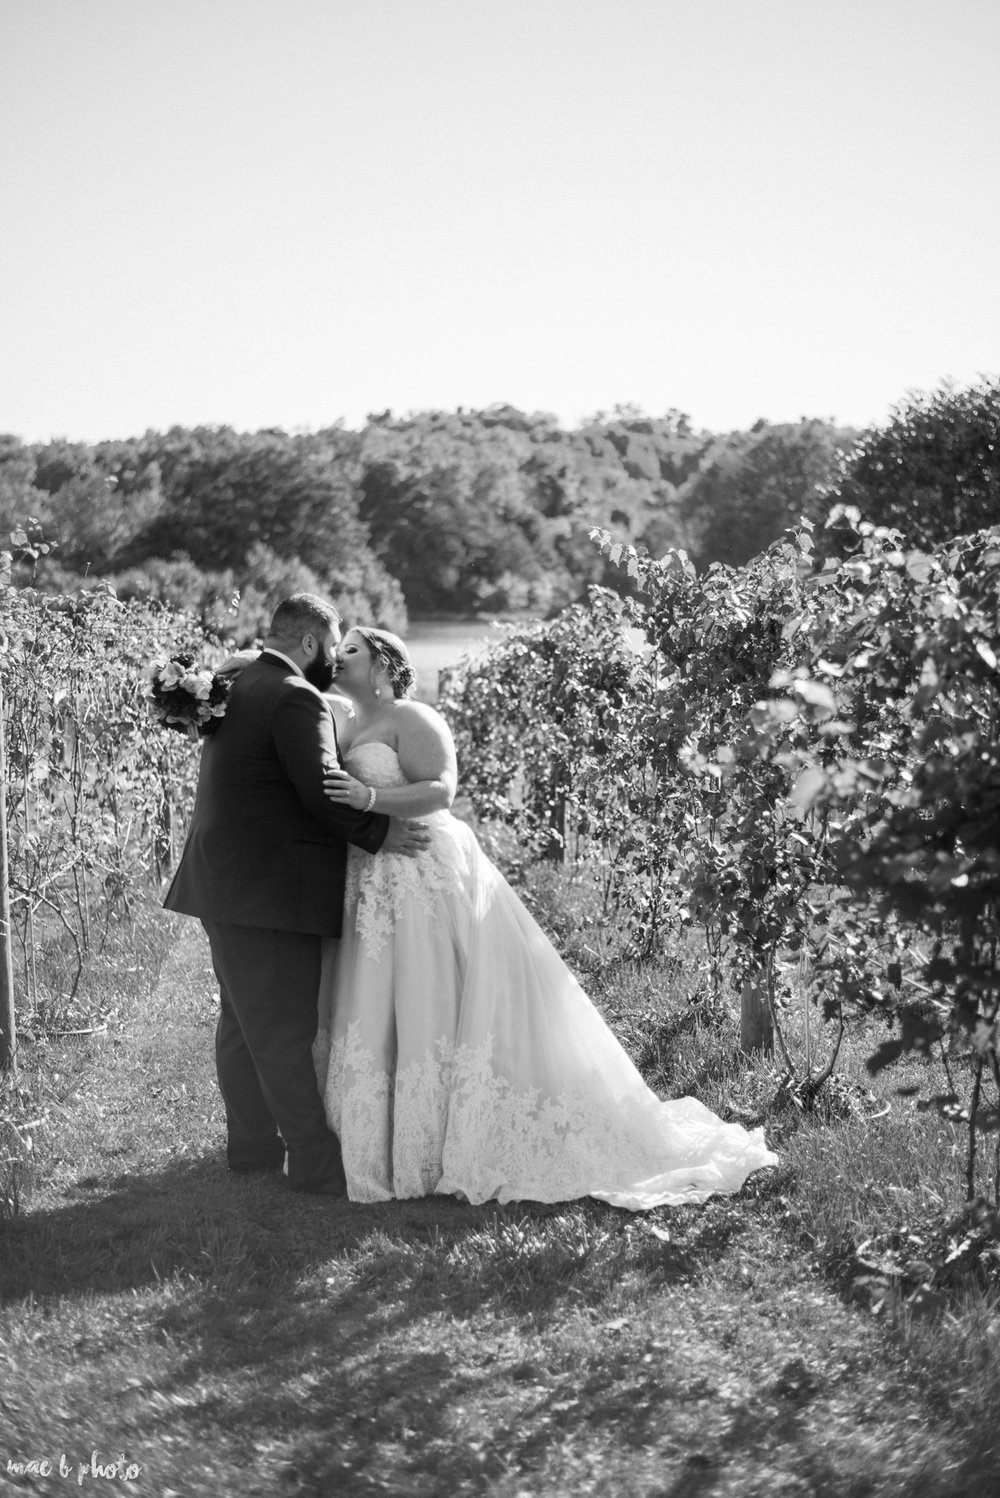 Amber & Kyle's Rustic Barn Wedding at SNPJ in Enon Valley, PA by Mae B Photo-66.jpg